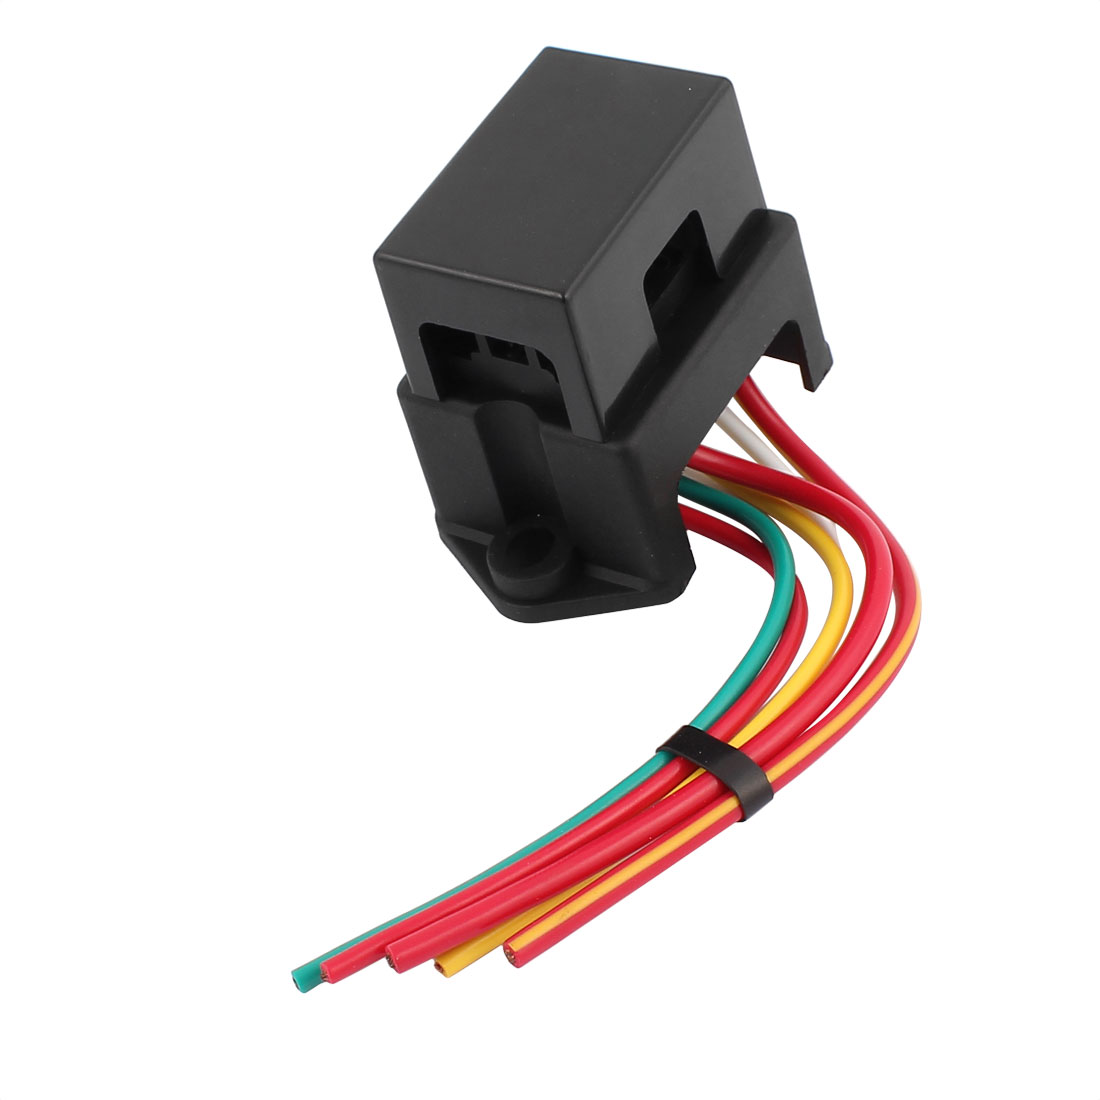 hight resolution of hs 004 4 roads with wire modification basic block auto car fuse box walmart com